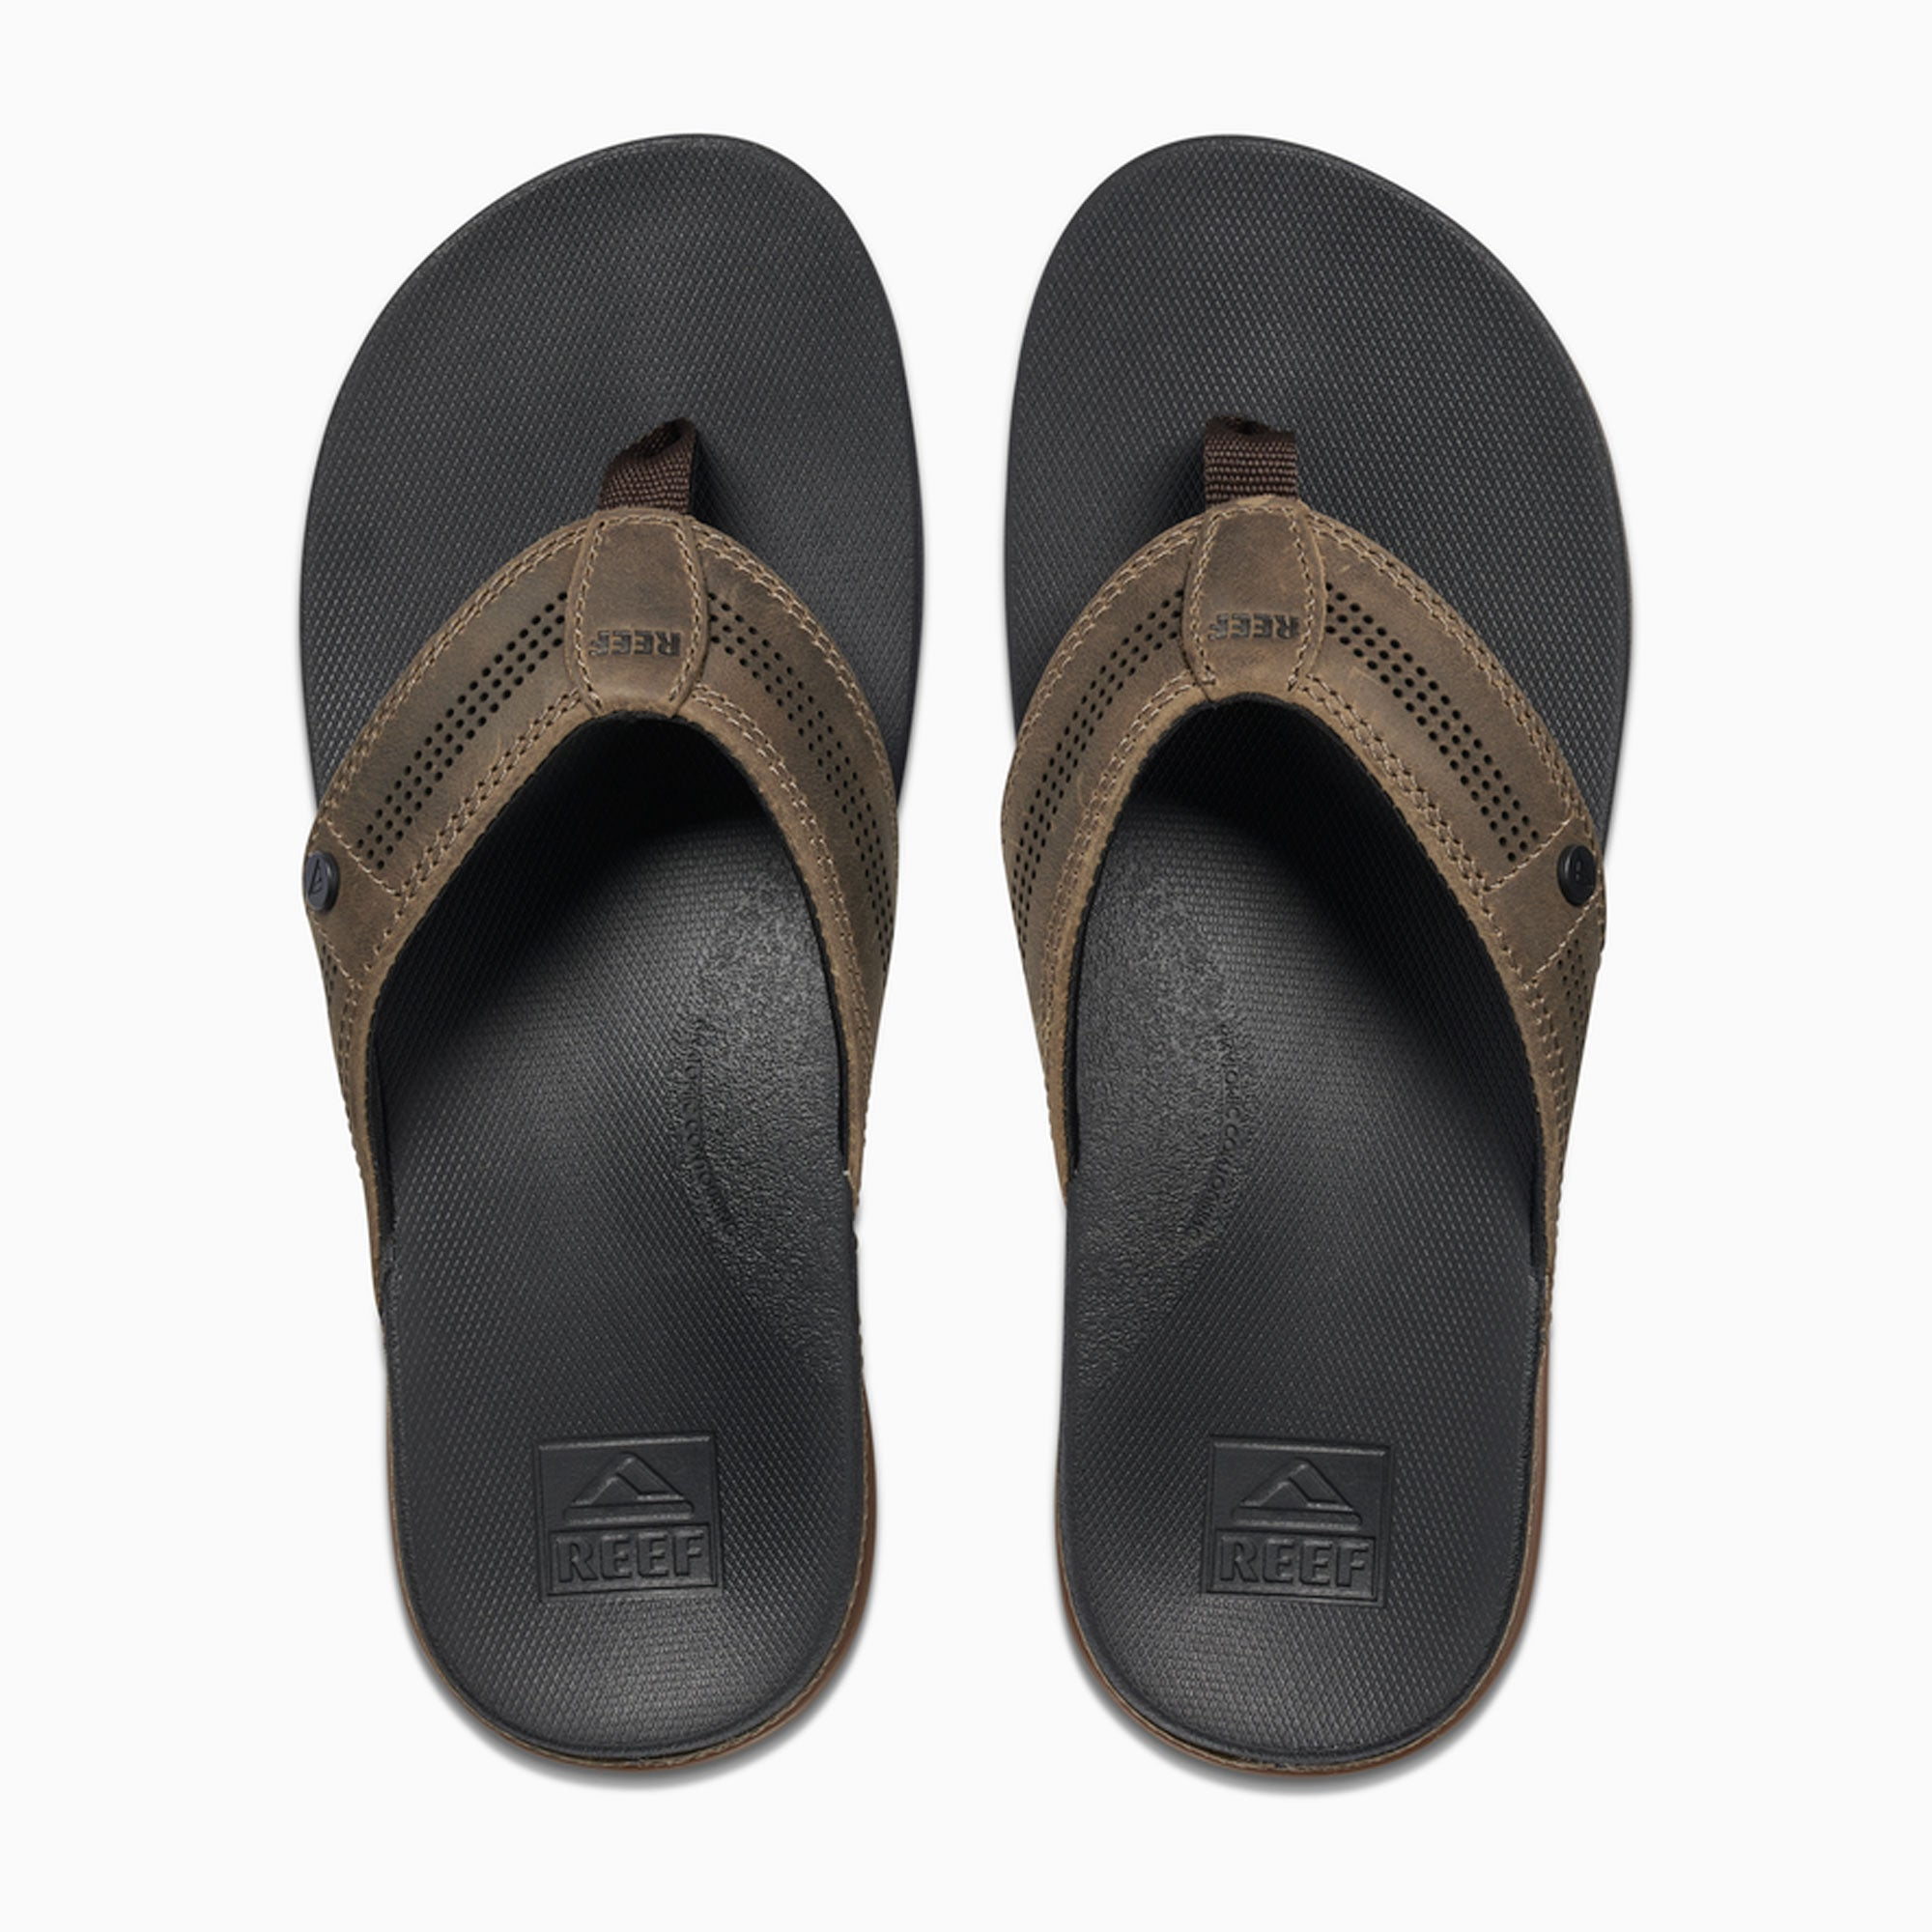 Reef Cushion Lux Men's Sandals - Tan/Black